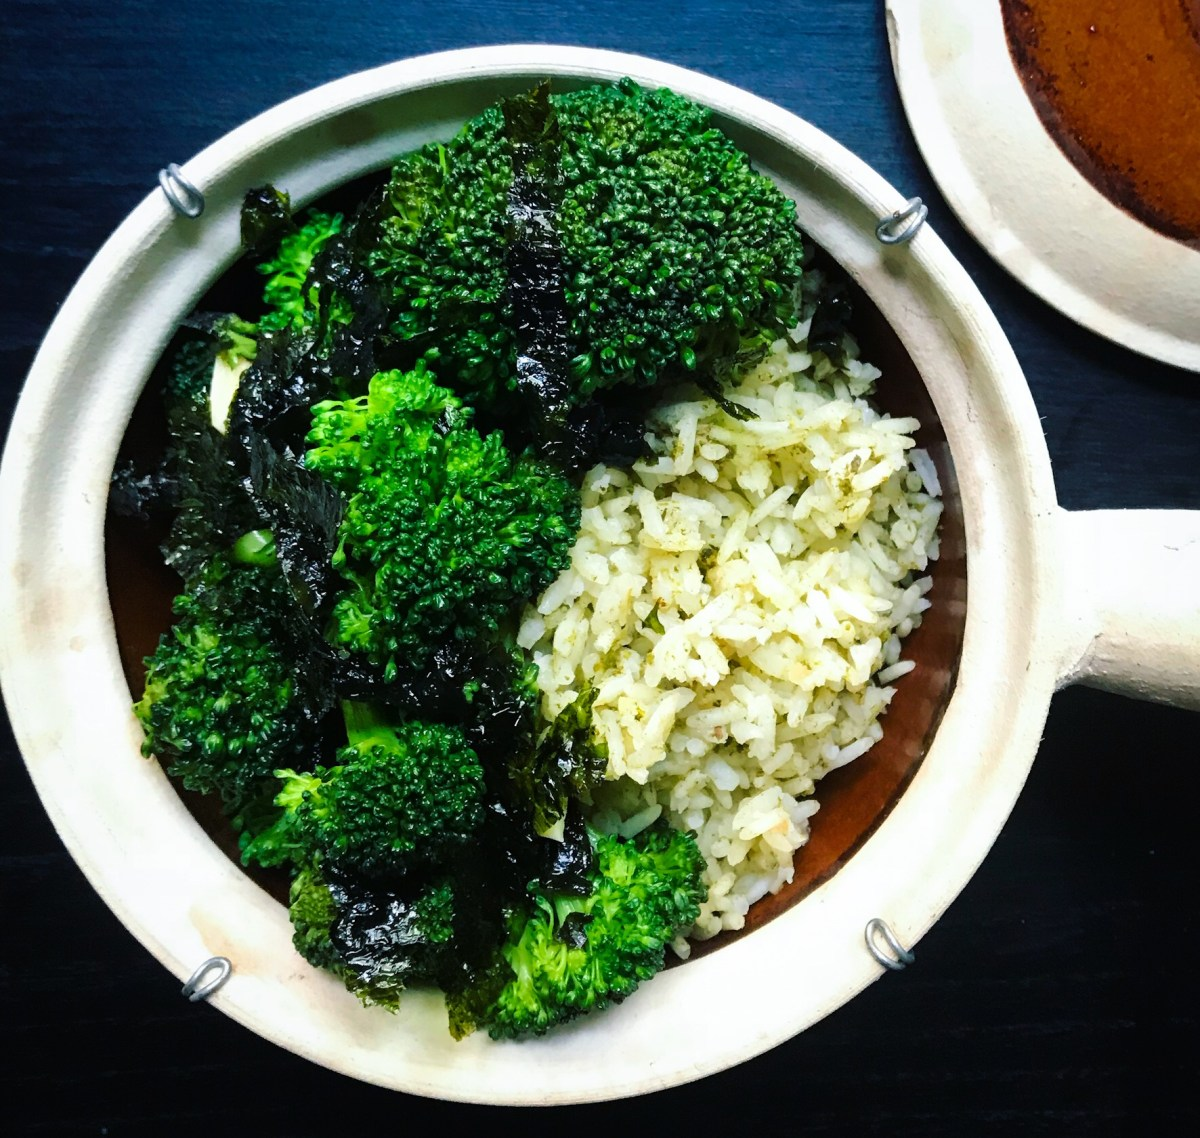 Vegetarian meal prep recipes to boost your energy! Green rice and broccoli!